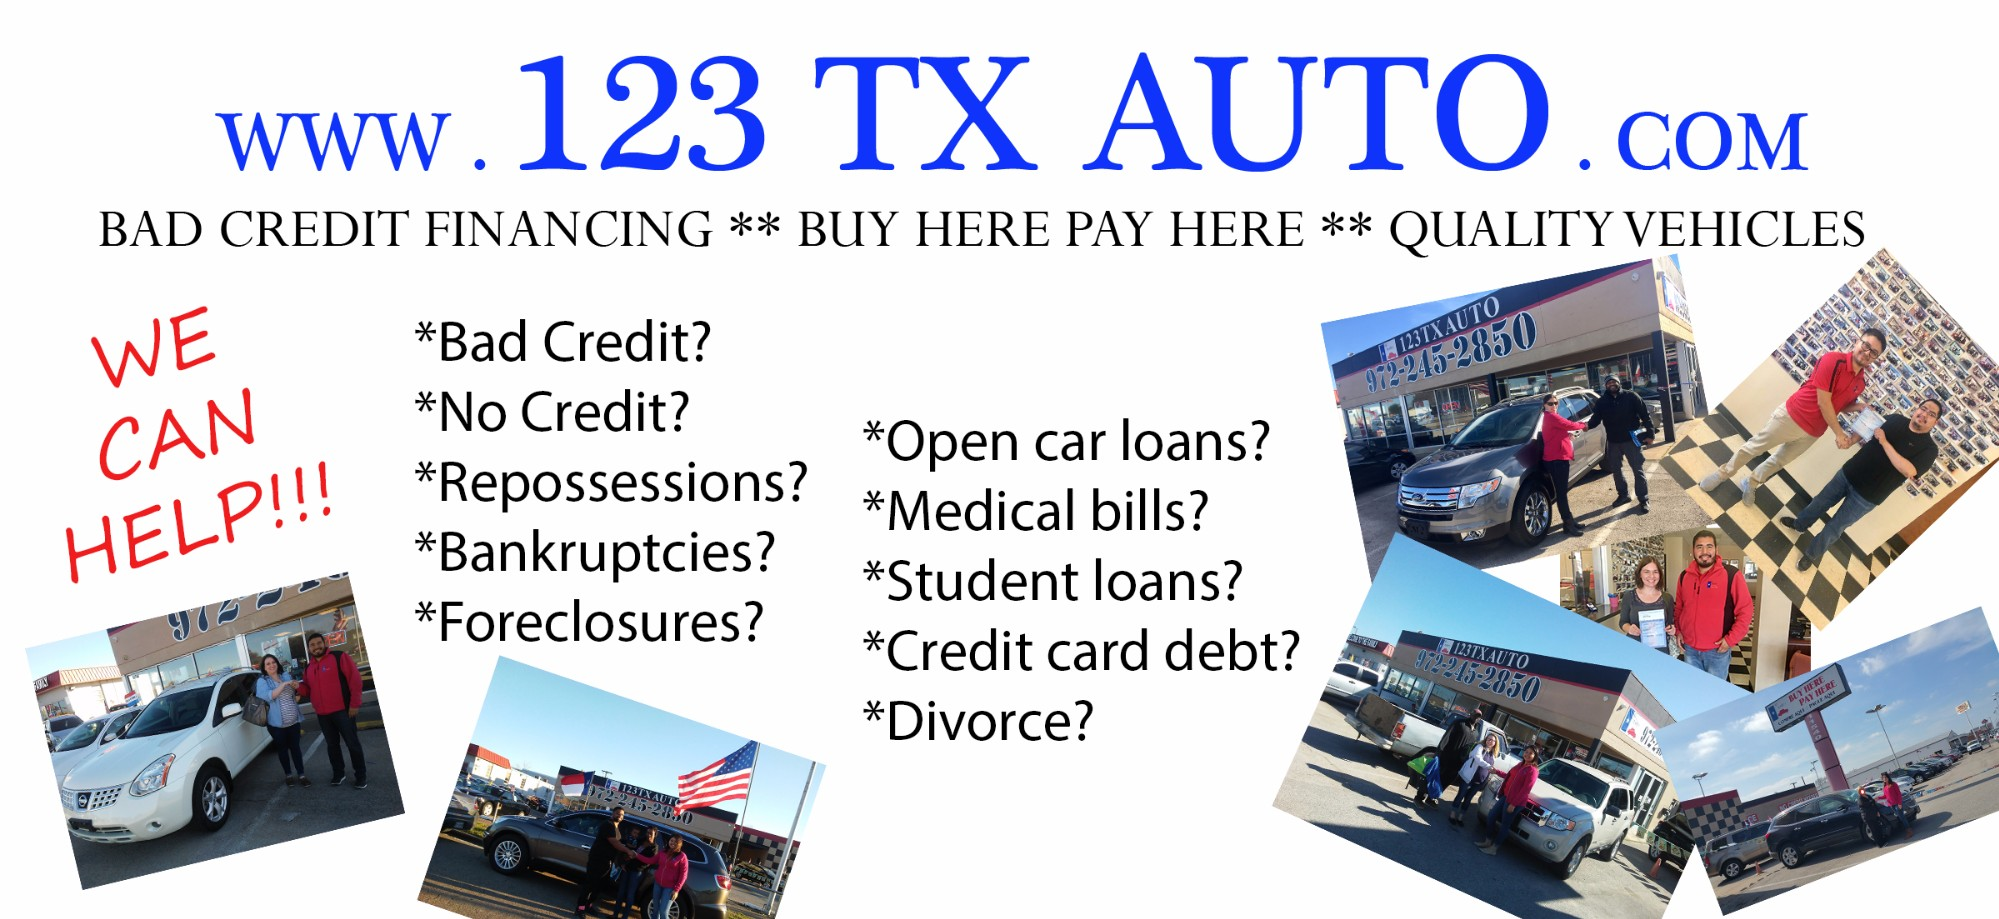 123 tx auto best bad credit car sales in dallas texas for Boykin motors buy here pay here